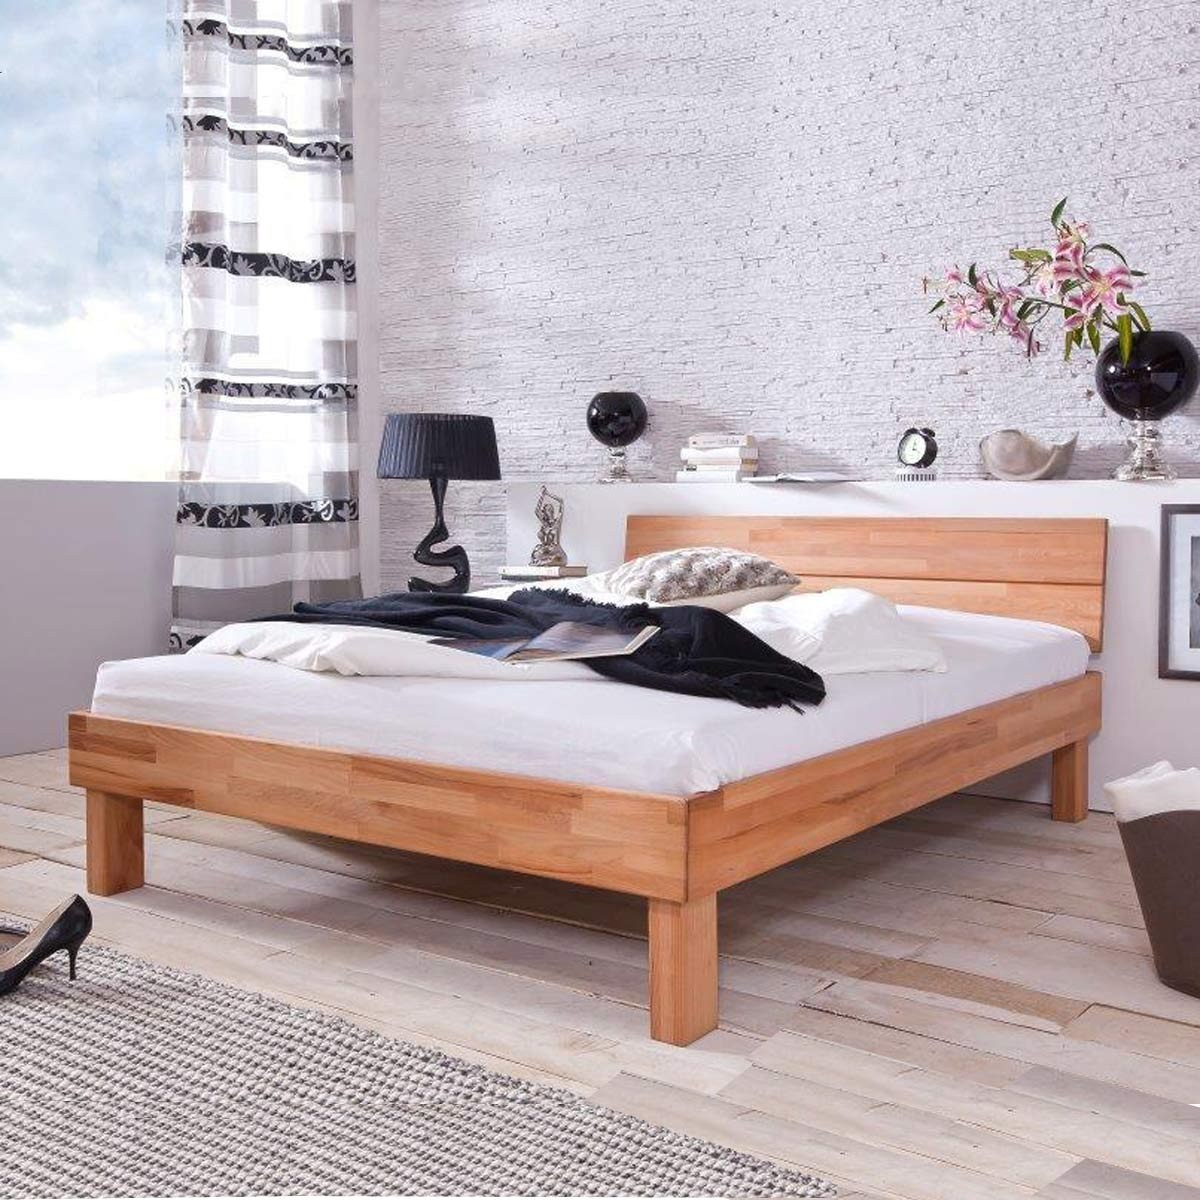 holzbett massivholzbett doppelbett bett massiv 180 x 200 cm in kernbuche ge lt ebay. Black Bedroom Furniture Sets. Home Design Ideas